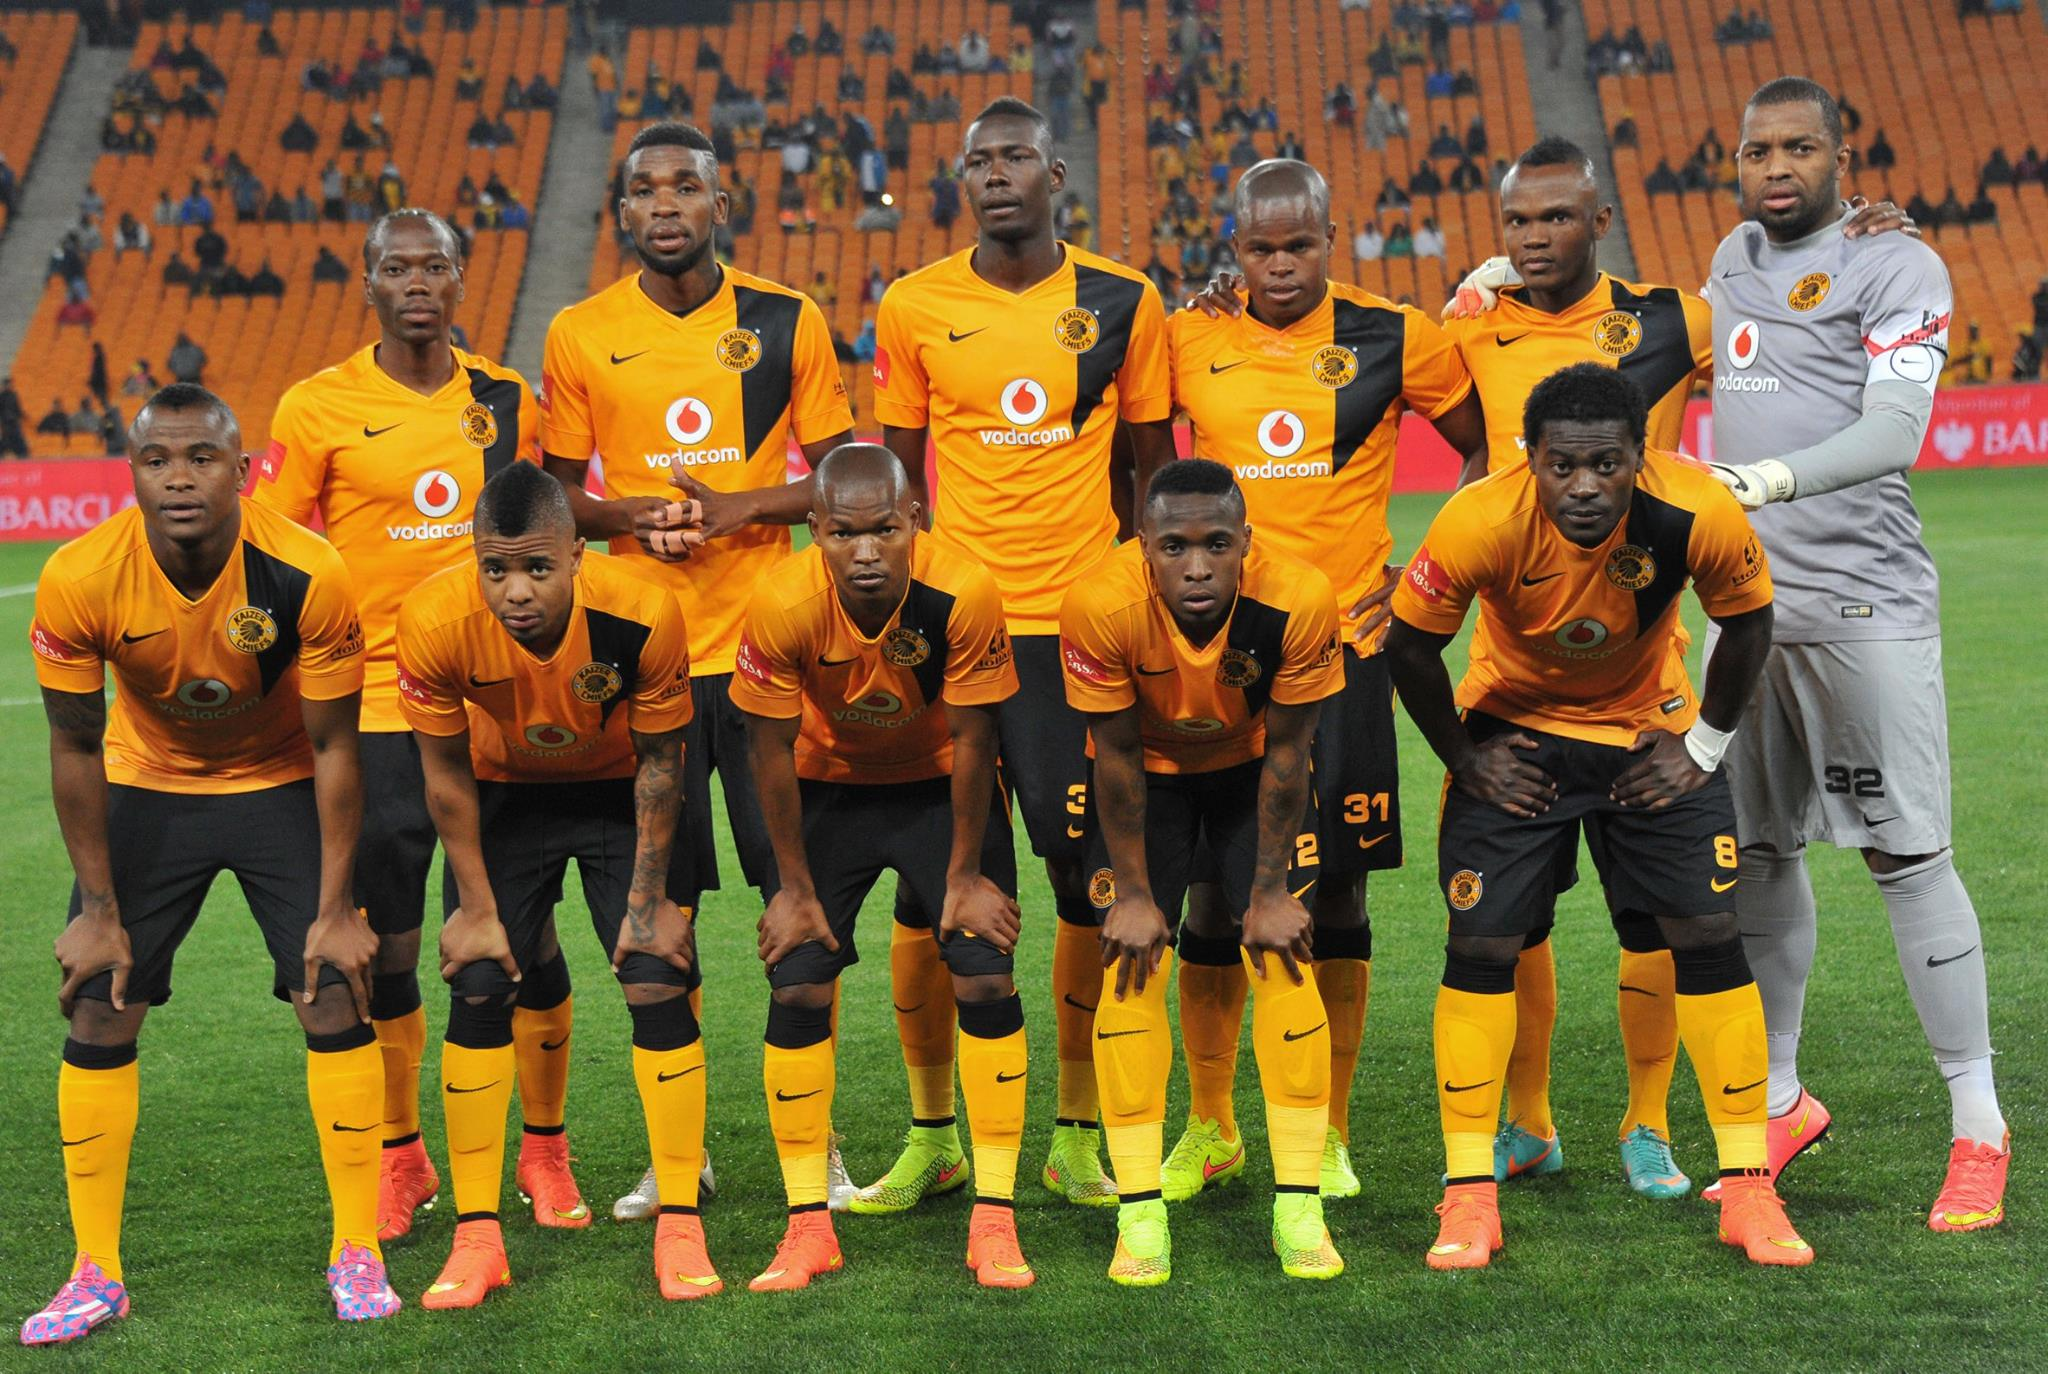 Kaizer Chiefs: Check Out Kaizer Chiefs New Away Kit